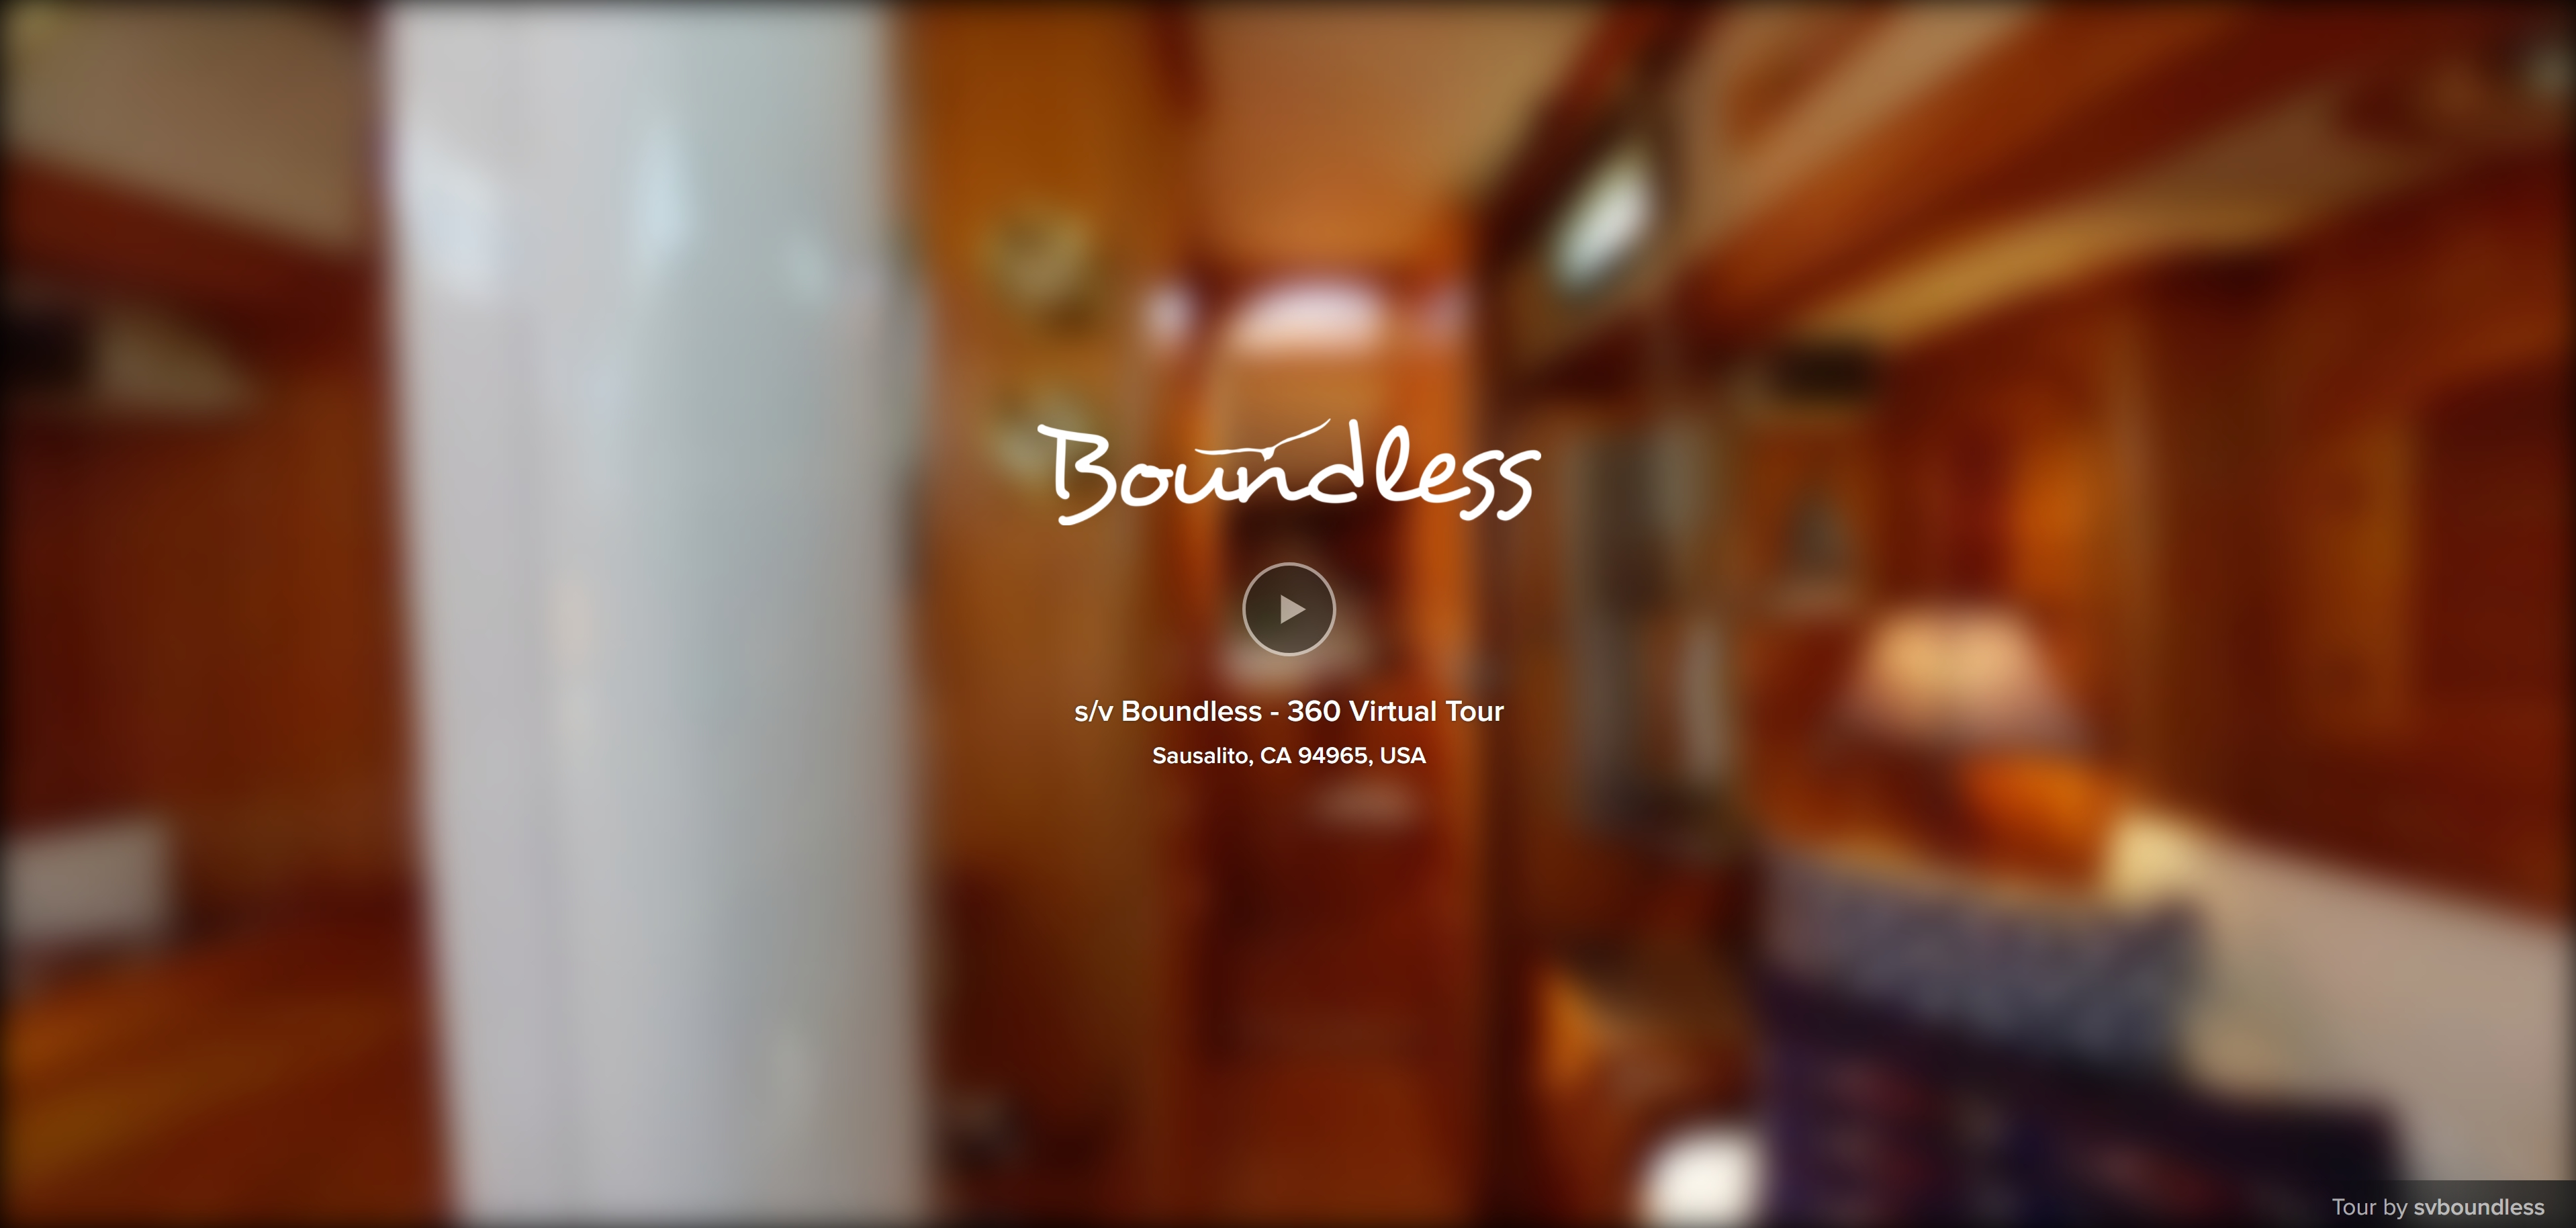 boundless intro screen